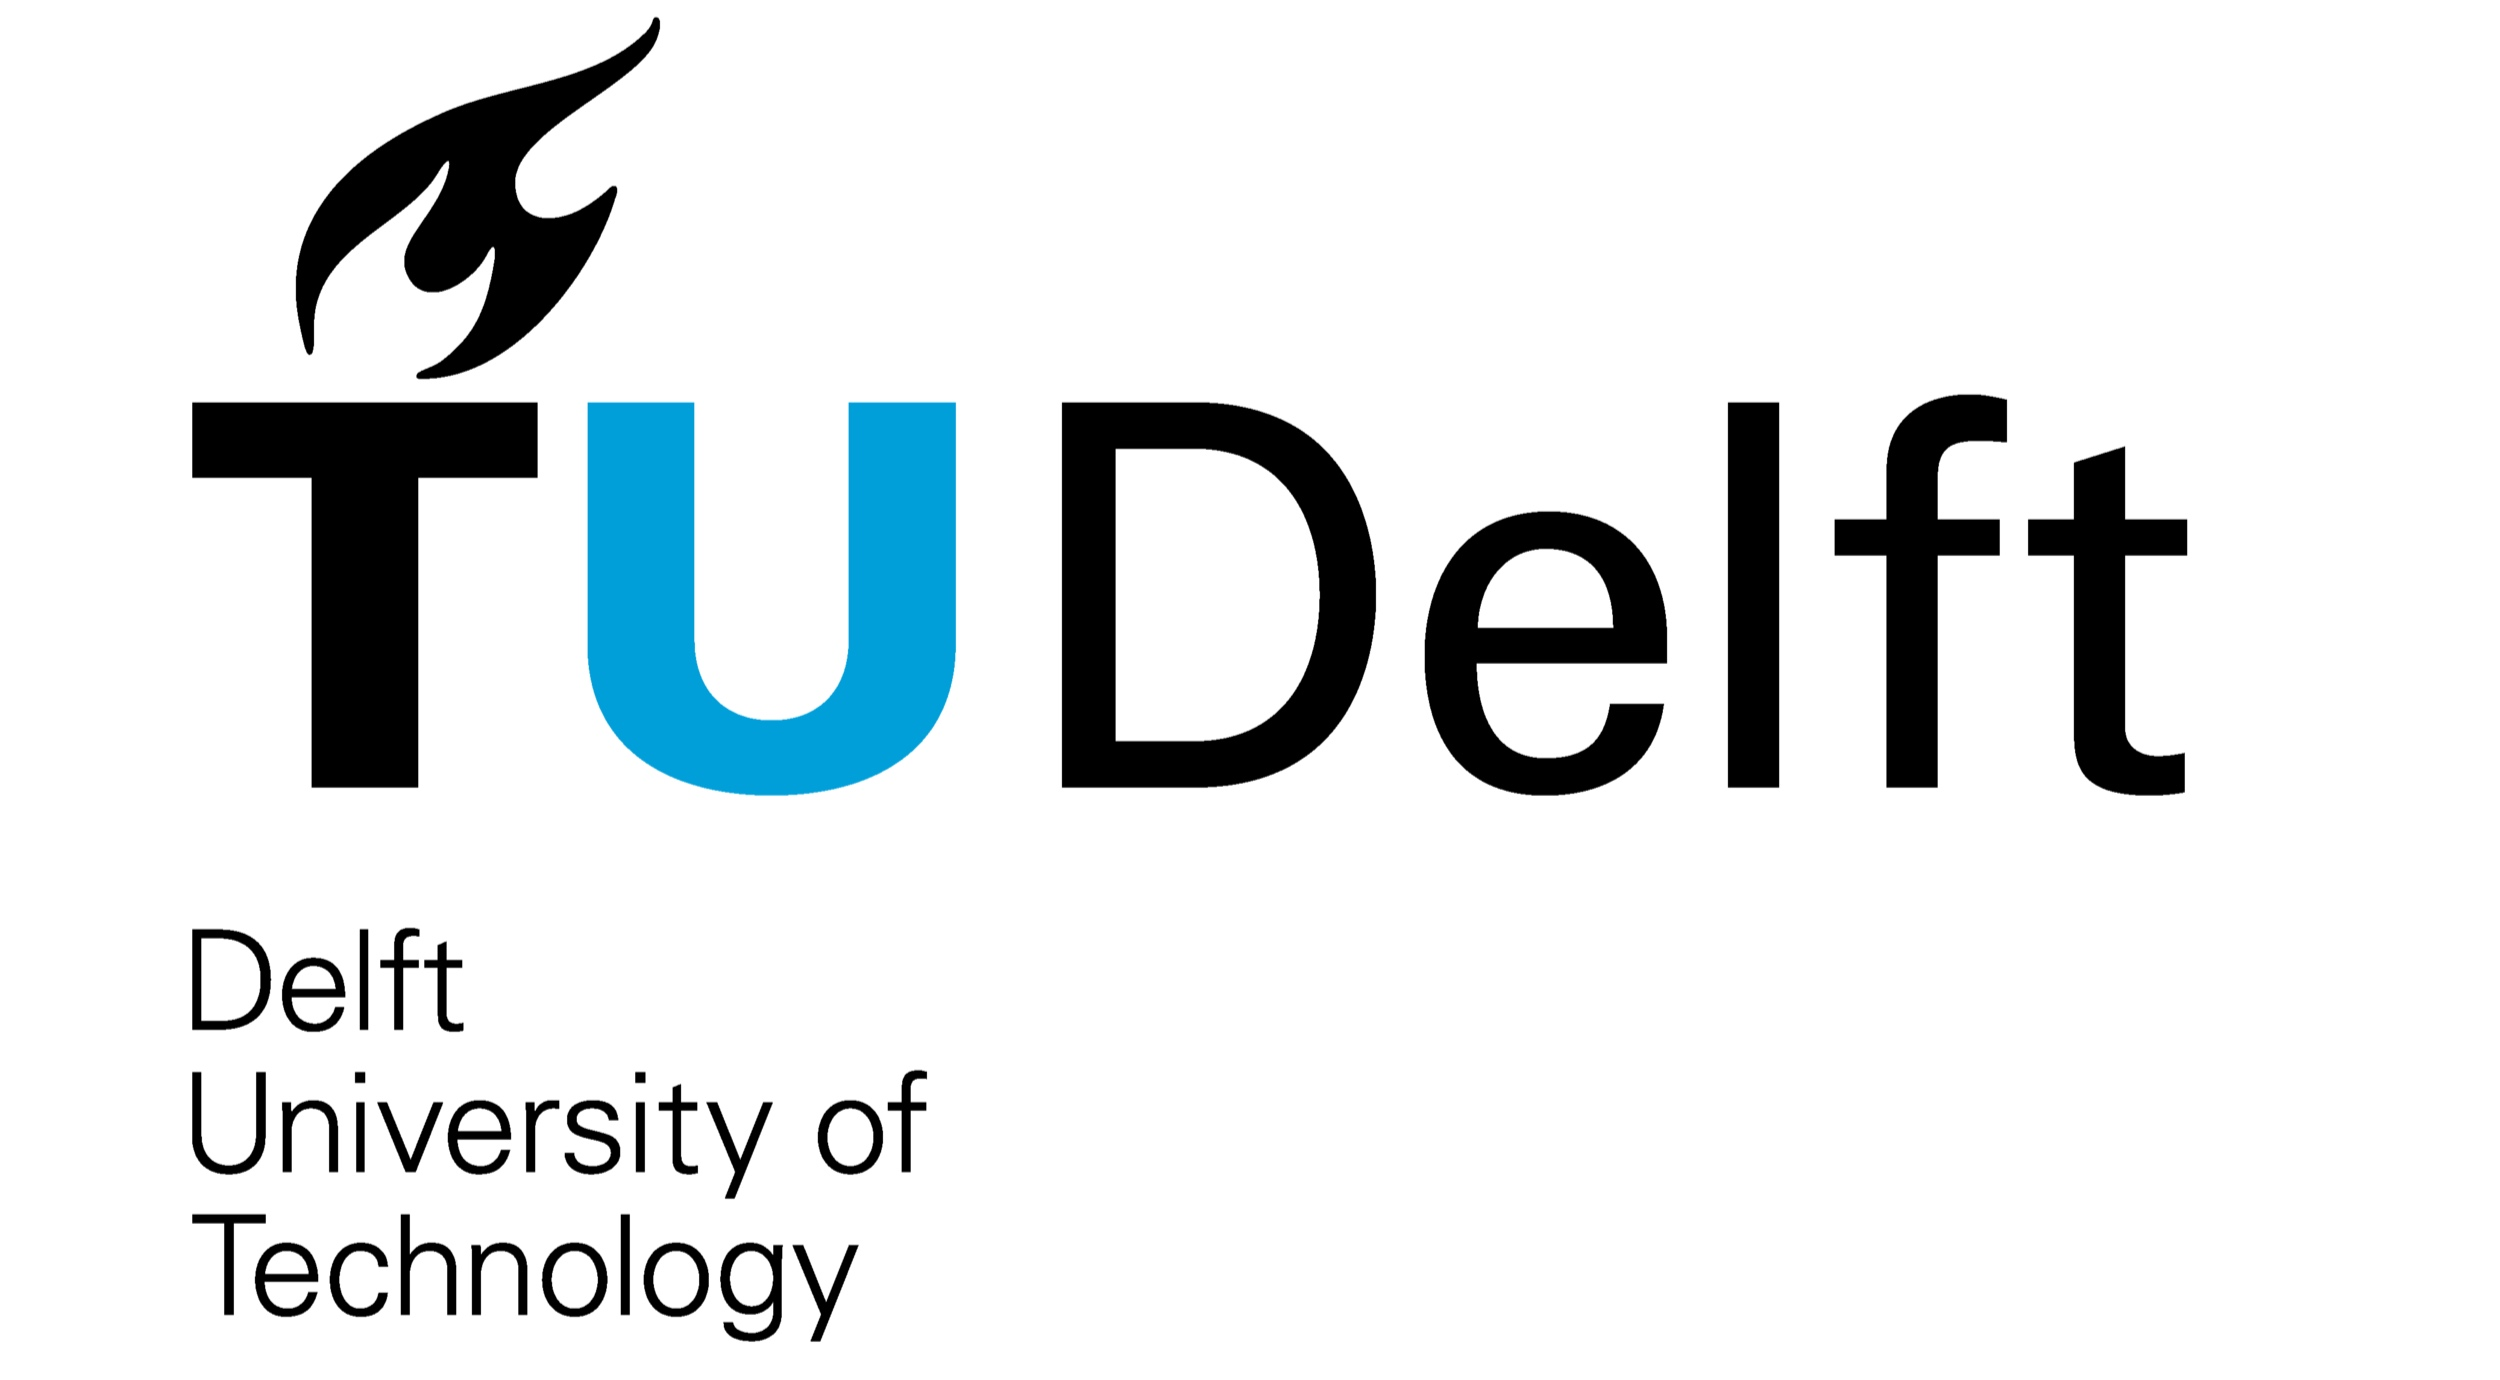 Delft-University-of-Technology-logo.jpg